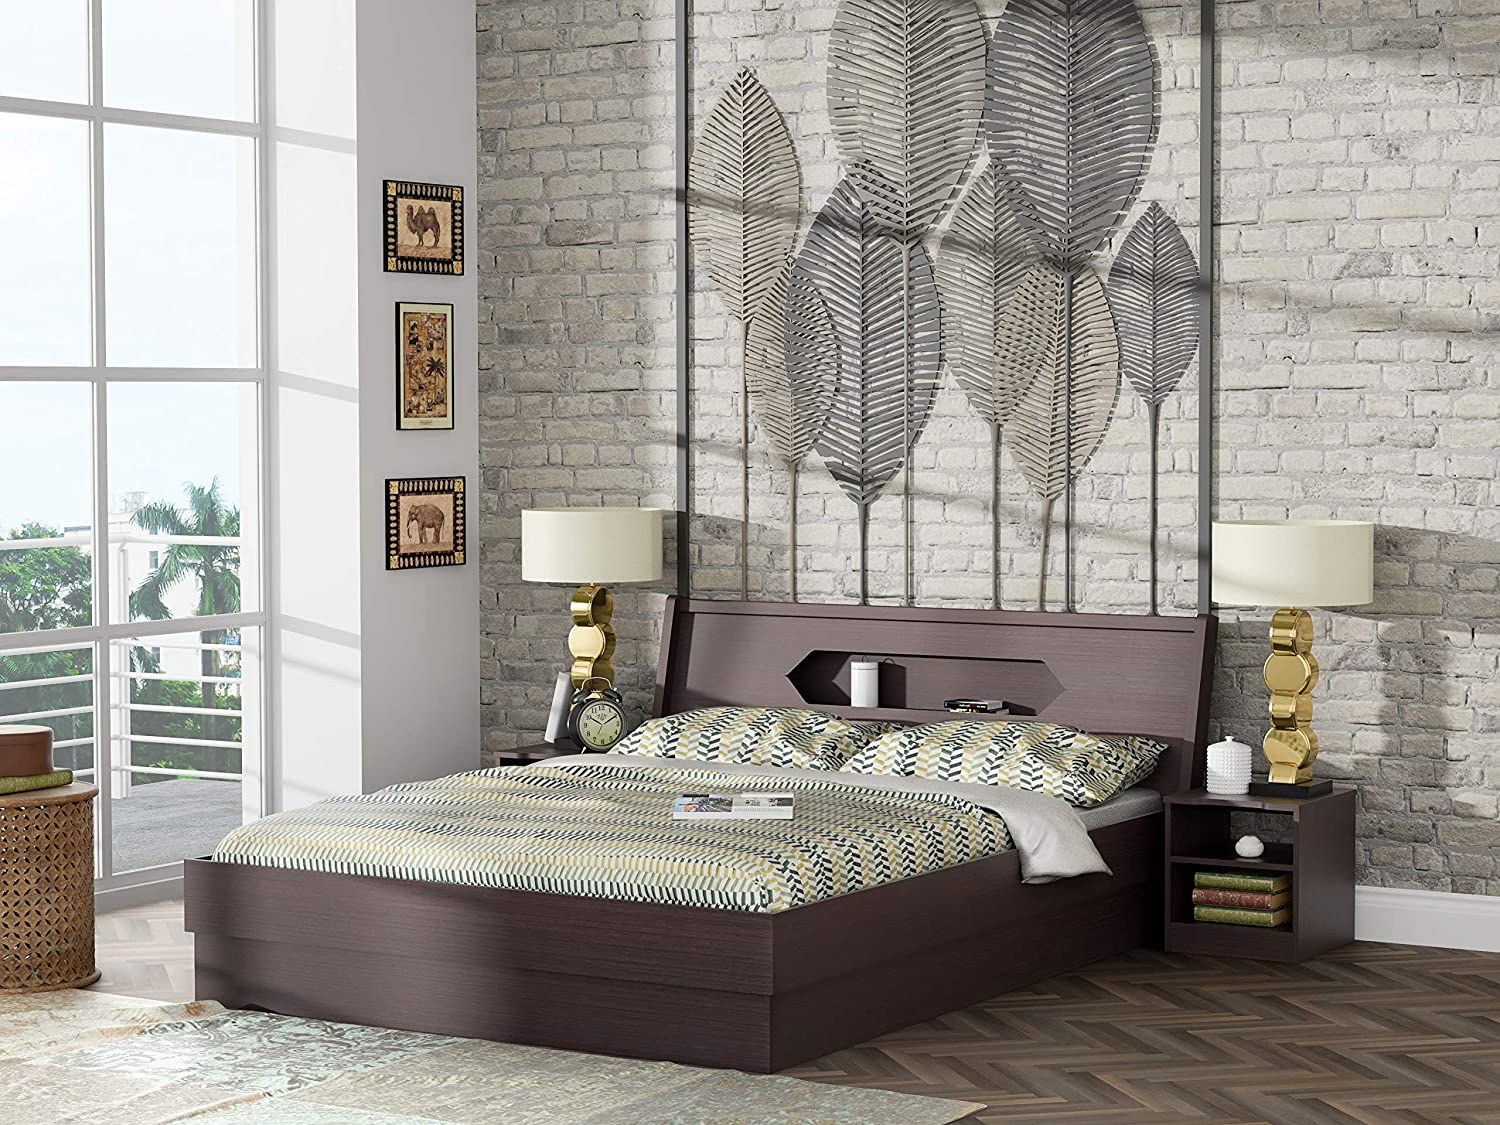 Stylespa Cove Queen Size Bed with Headboard Storage (Bamboo)